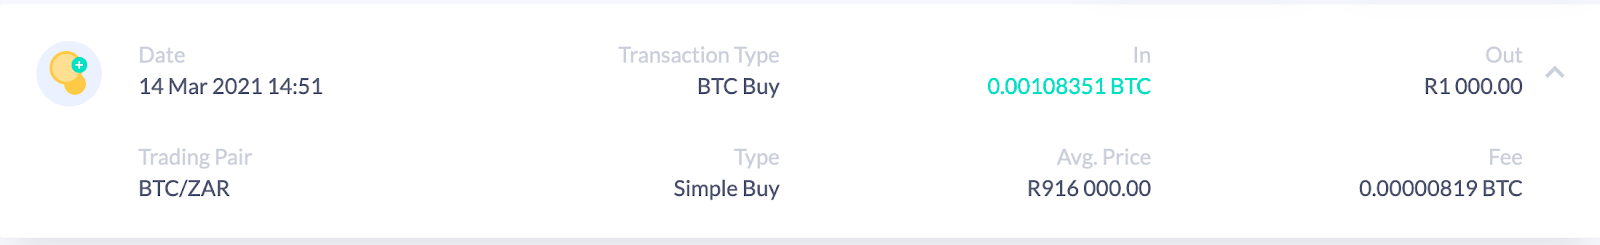 Screenshot of BTC purchase order from Valr.